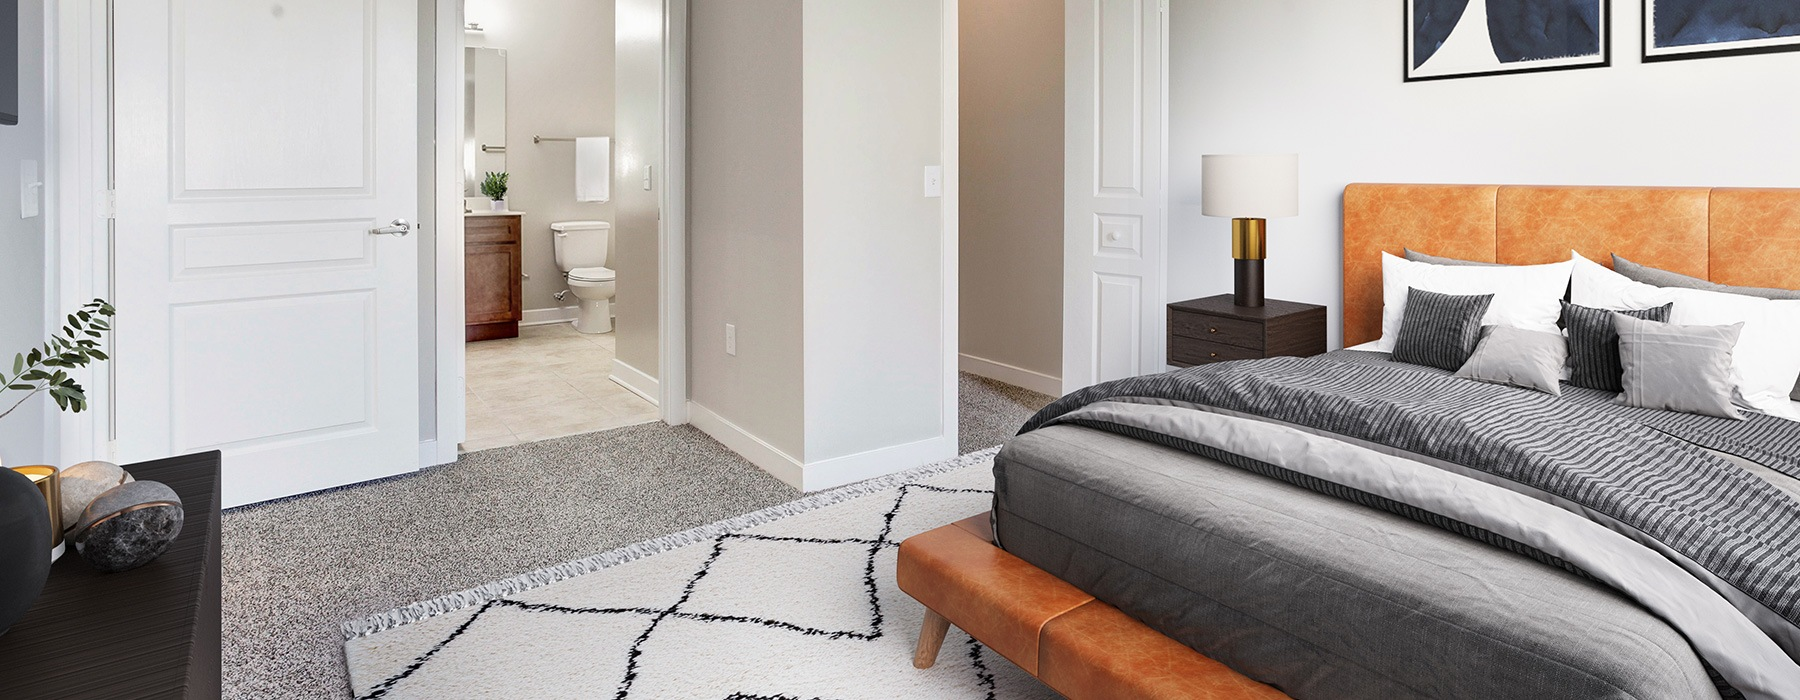 bedroom with large areas for a full bed, furniture and that includes easy access to bathroom